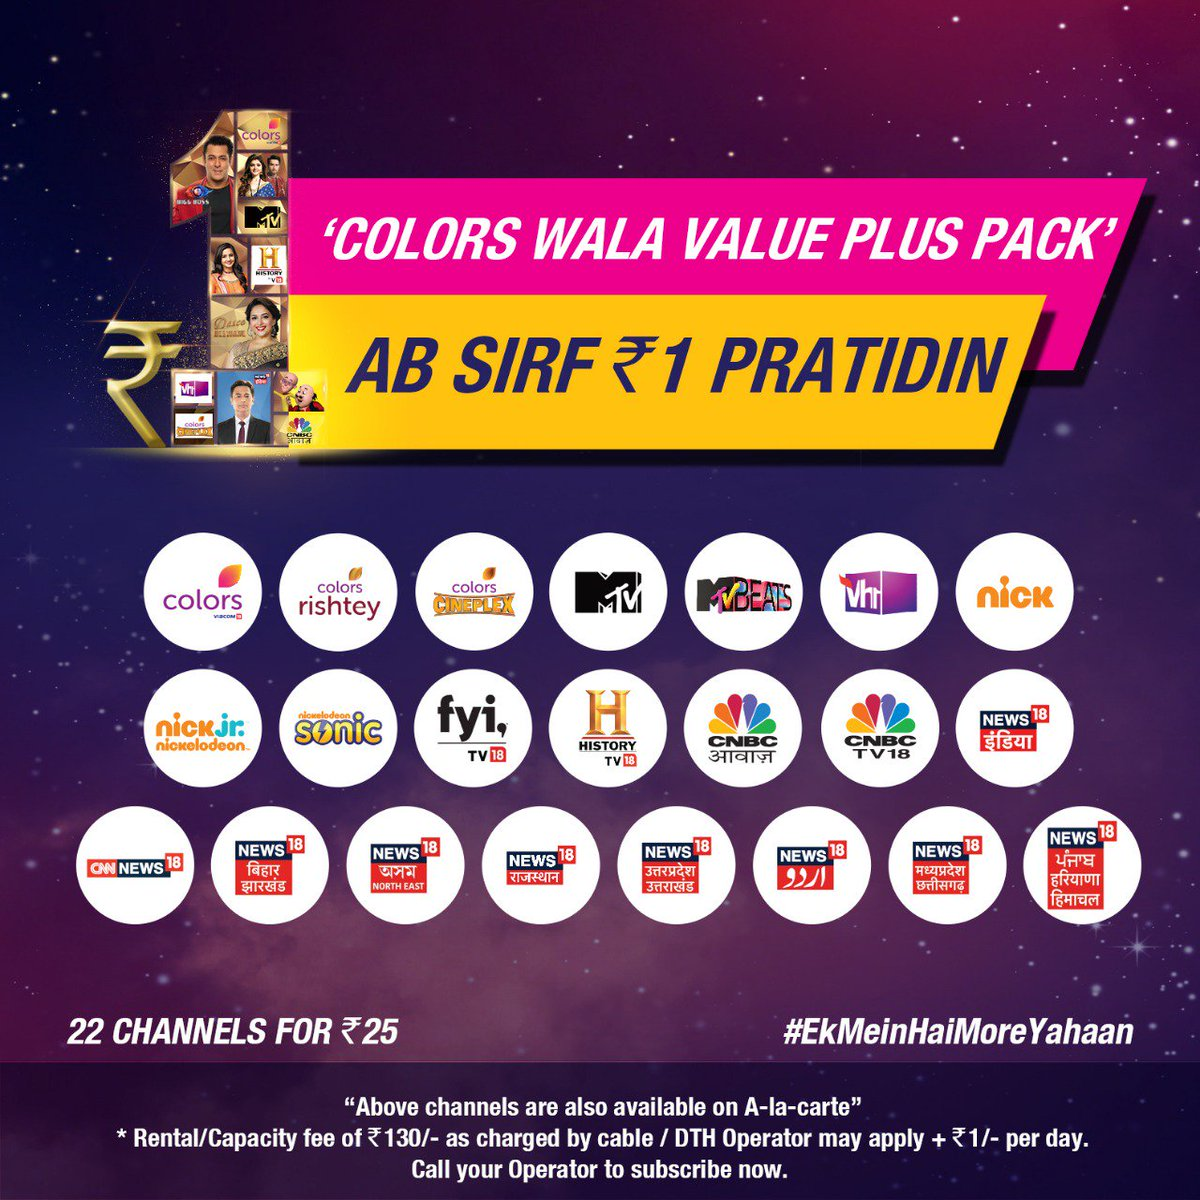 09367ac4e5 Contact your Cable DTH operator now to subscribe. Rental fee of Rs.130 -.  These channels are also available on a-la-carte. T C Applypic.twitter.com   ...